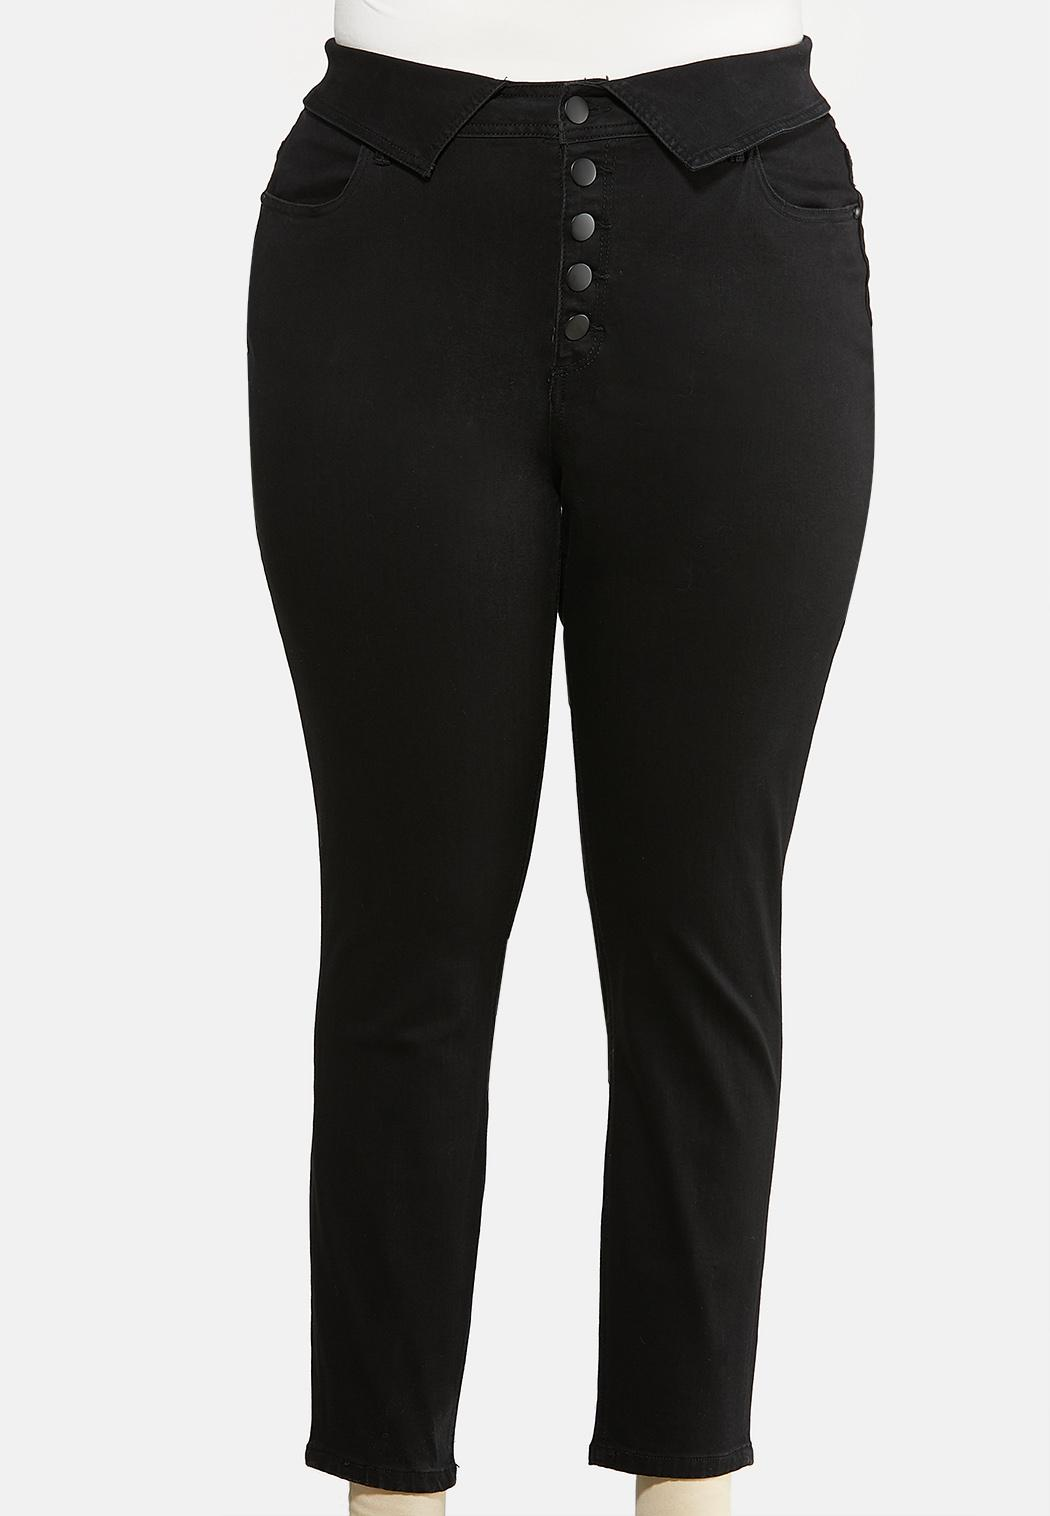 Plus Size Fold Over Skinny Jeans